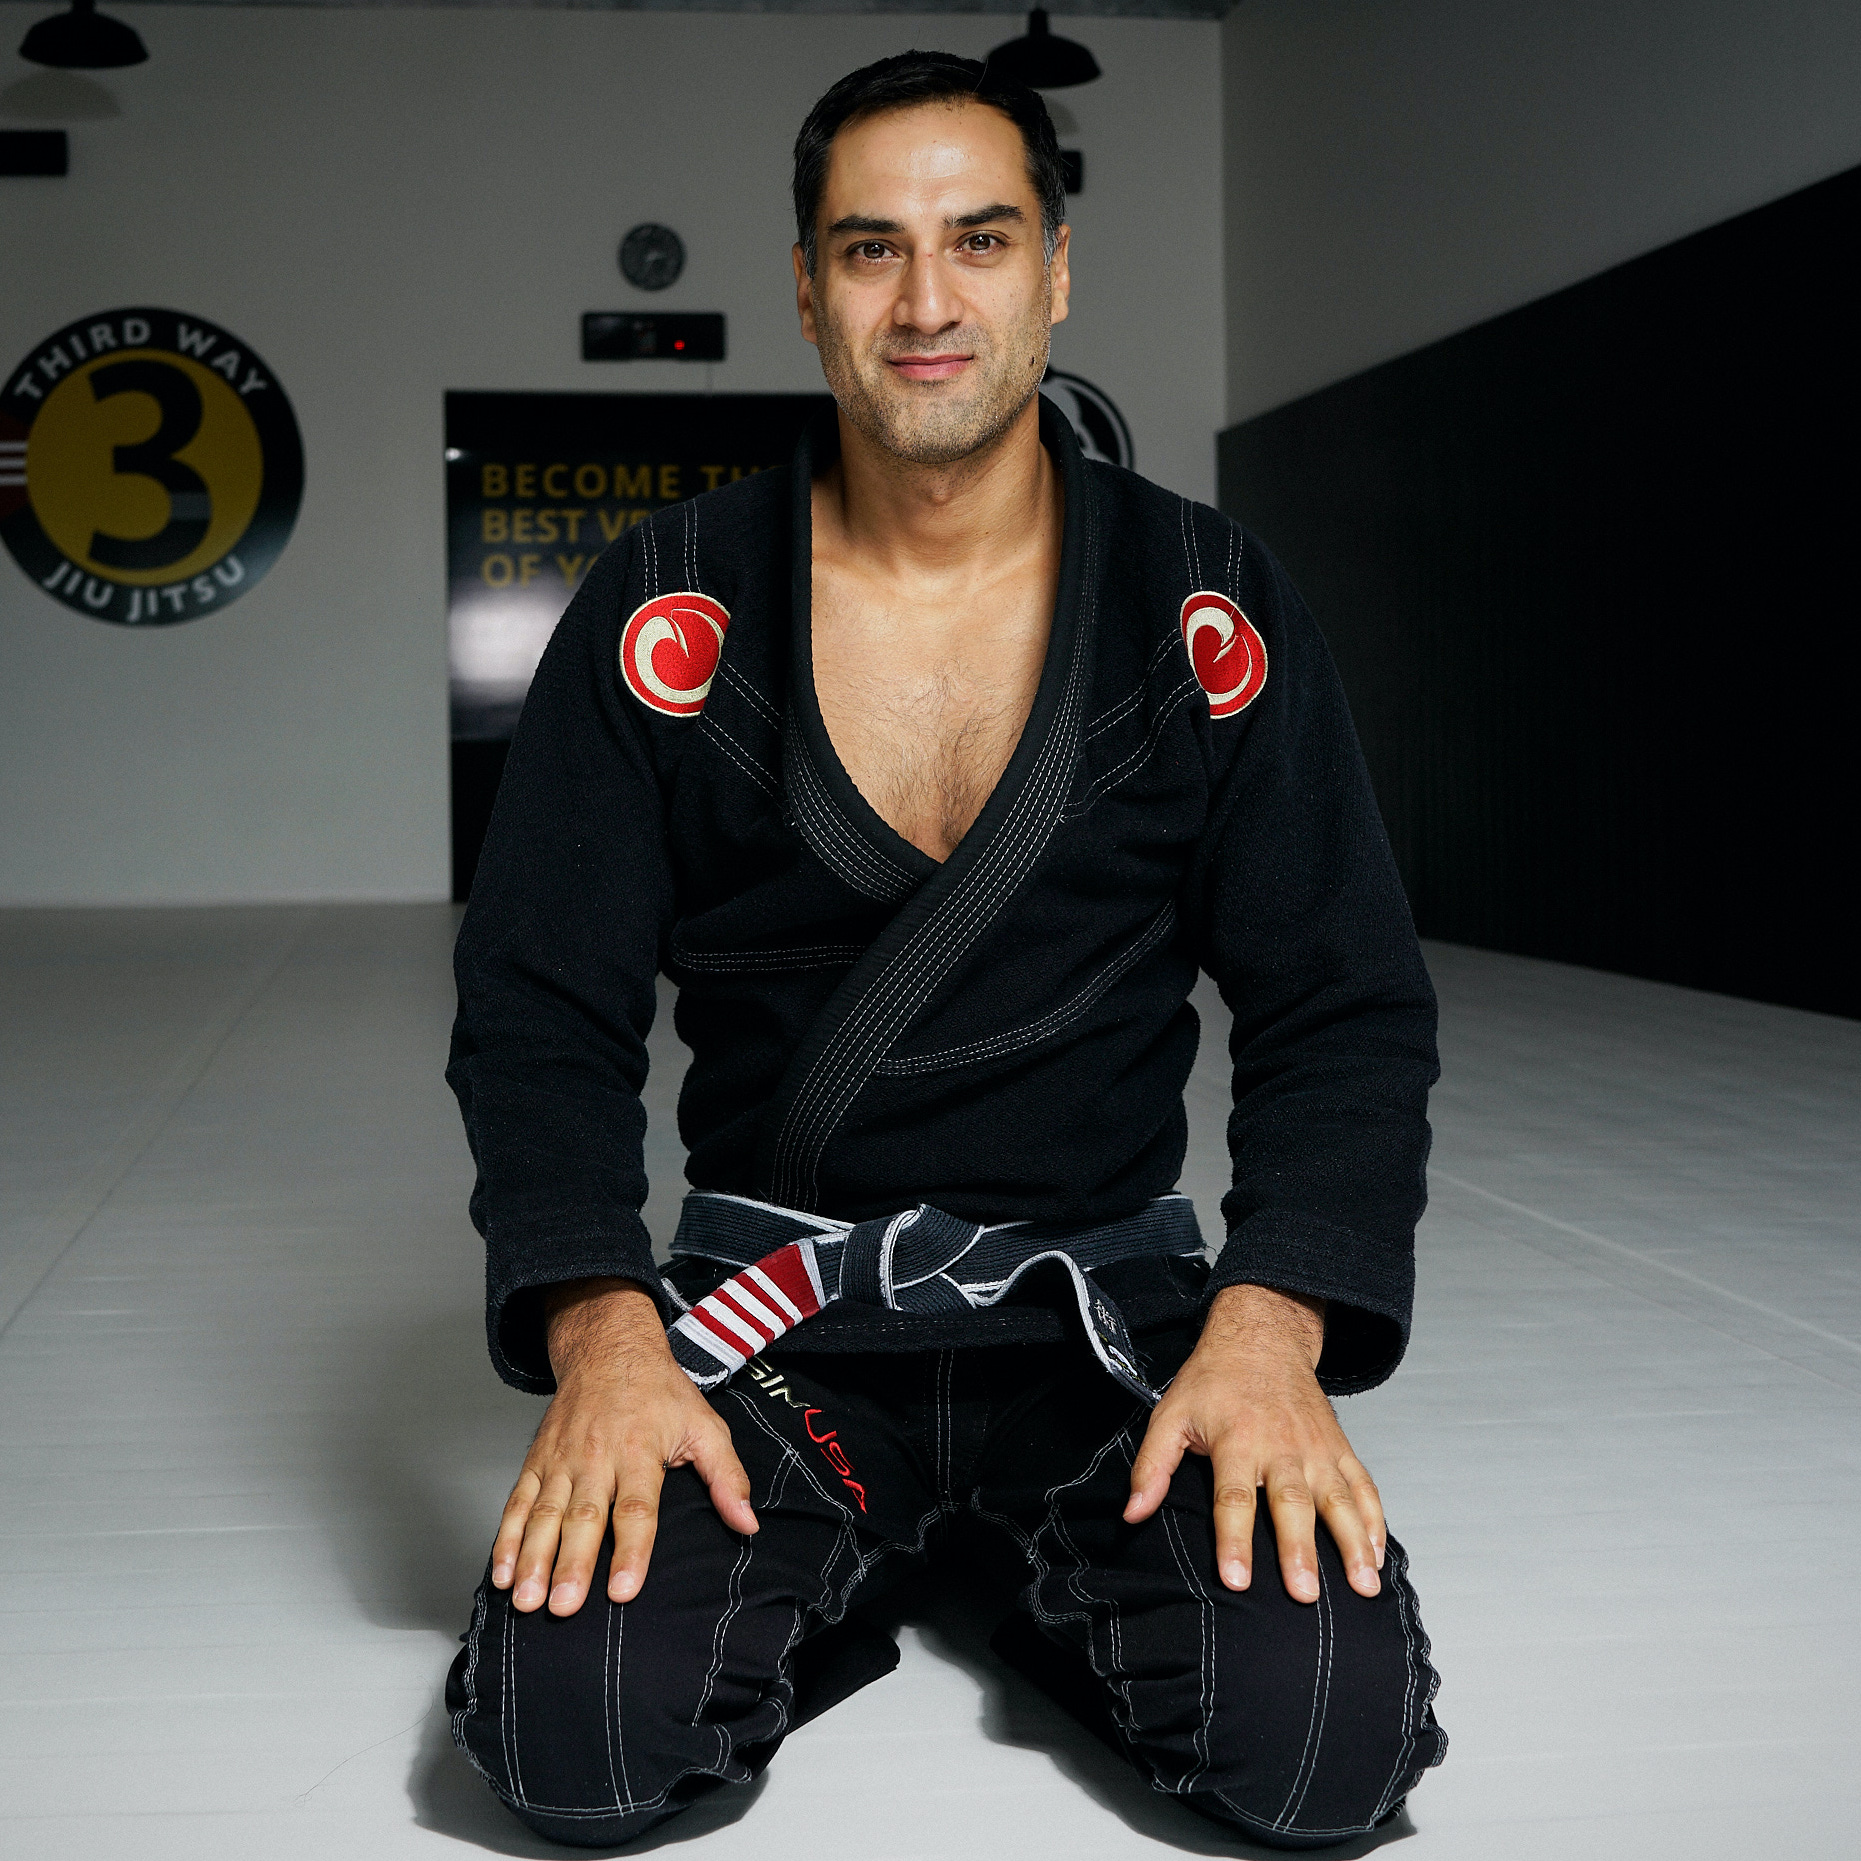 Optimizing Your Brazilian Jiu-Jitsu Journey